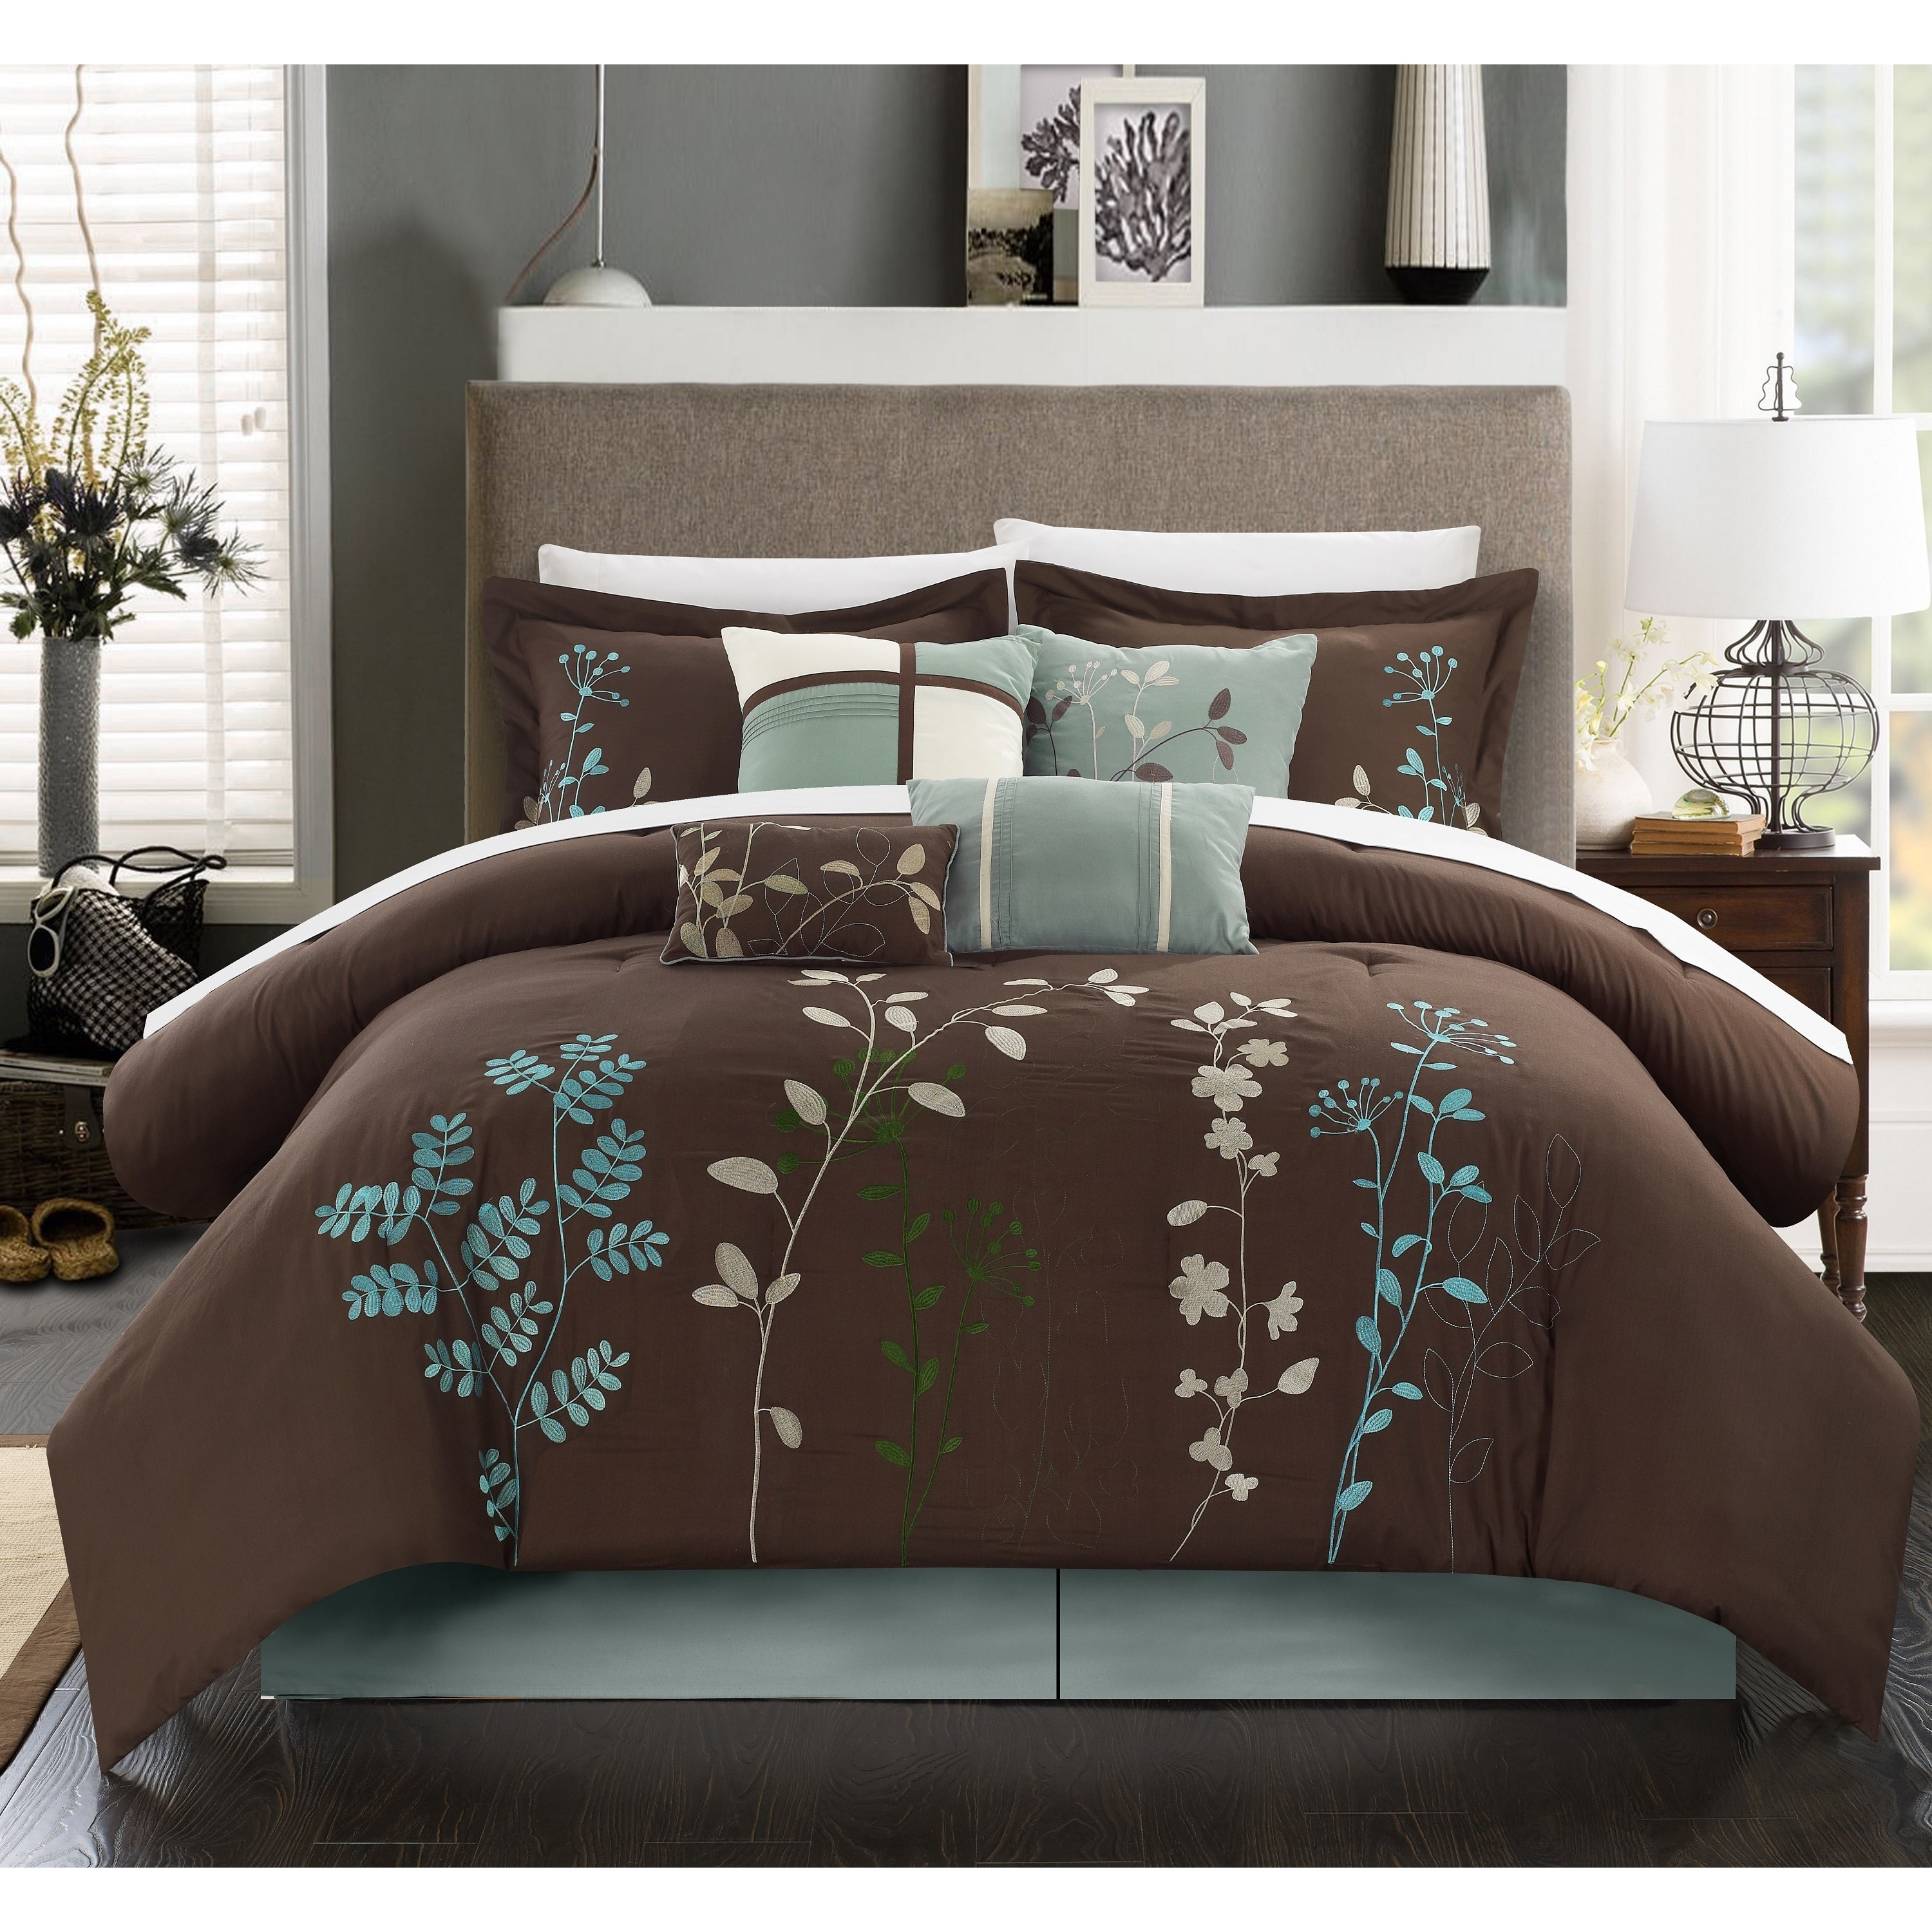 Bliss Garden 8-piece Chocolate Brown Comforter Set - Free Shipping Today -  Overstock.com - 14260962